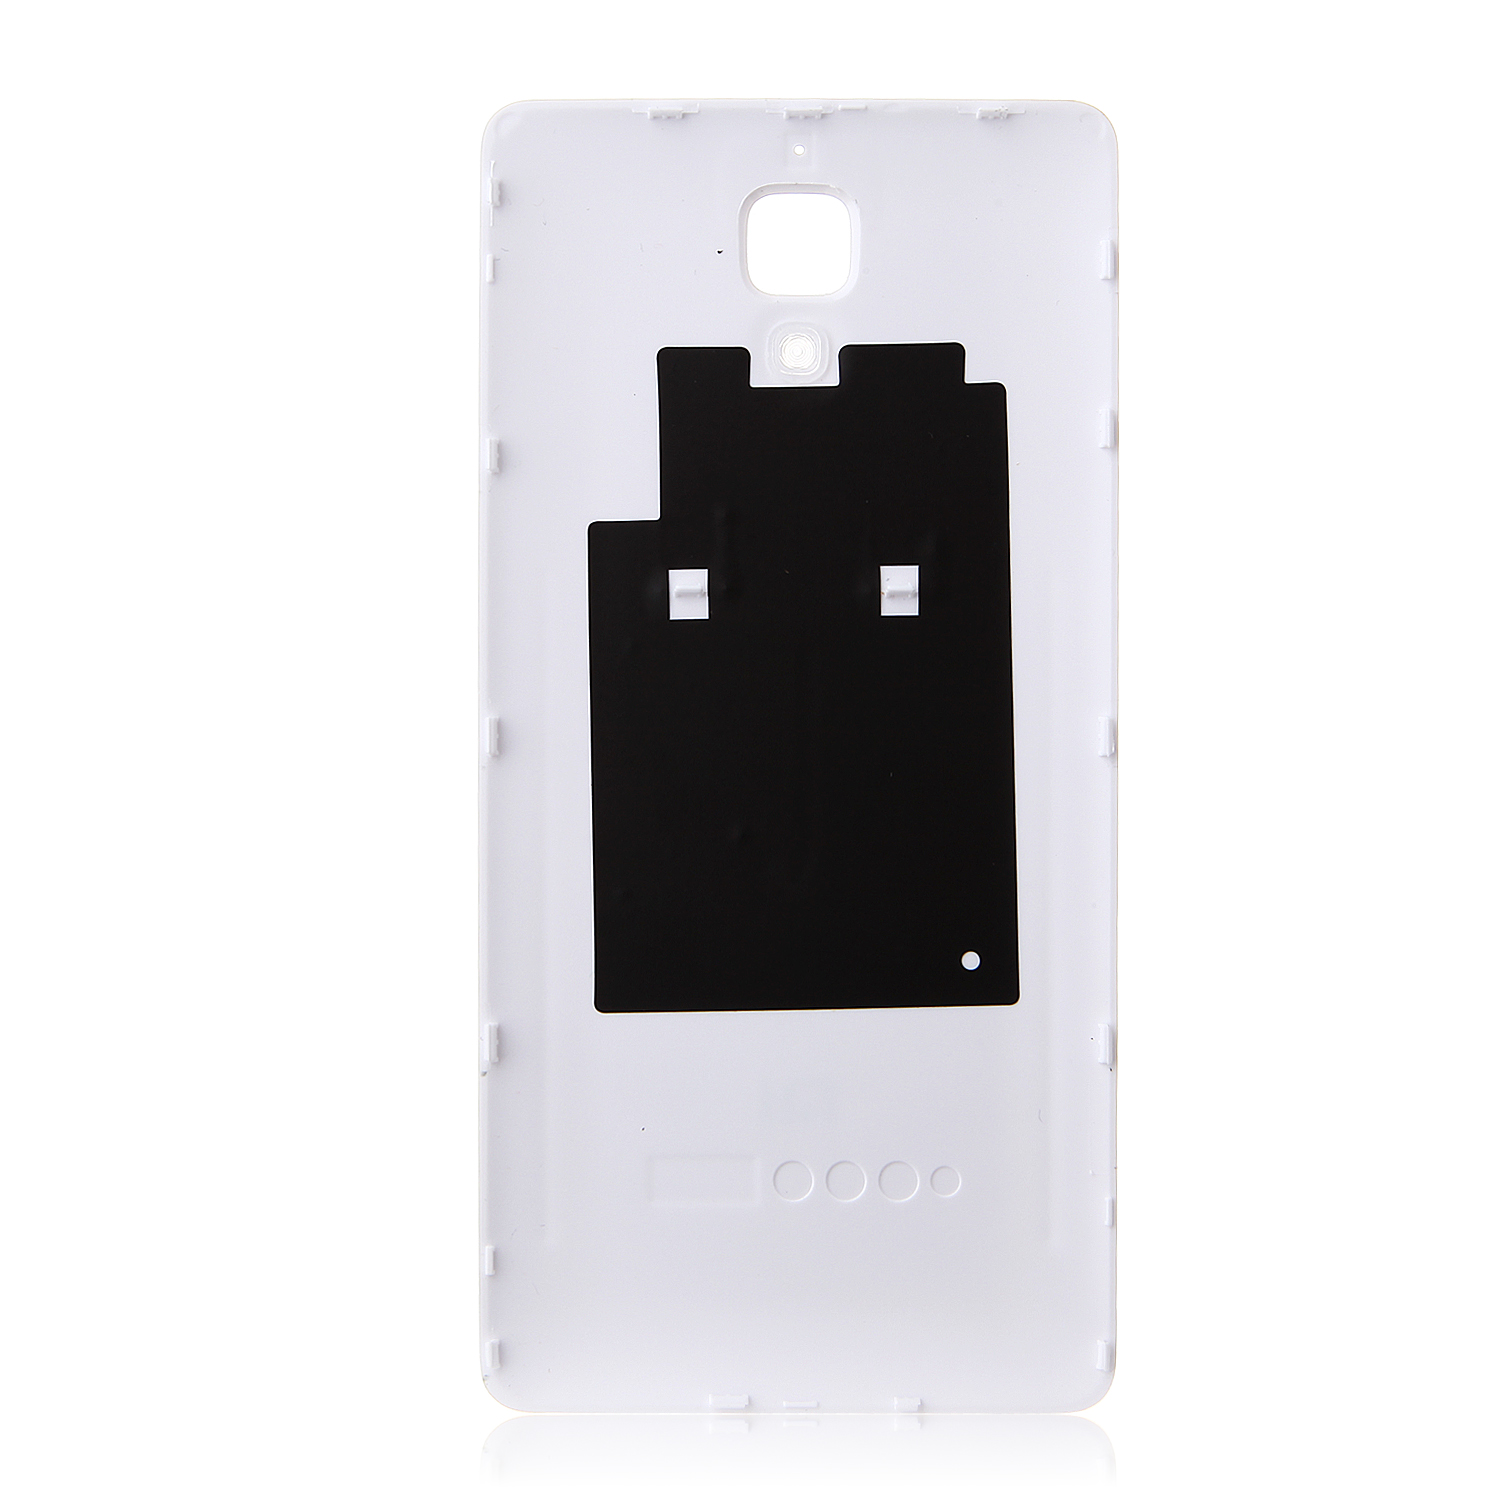 Replacement Battery Cover Back Case for XIAOMI MI4 Smartphone White